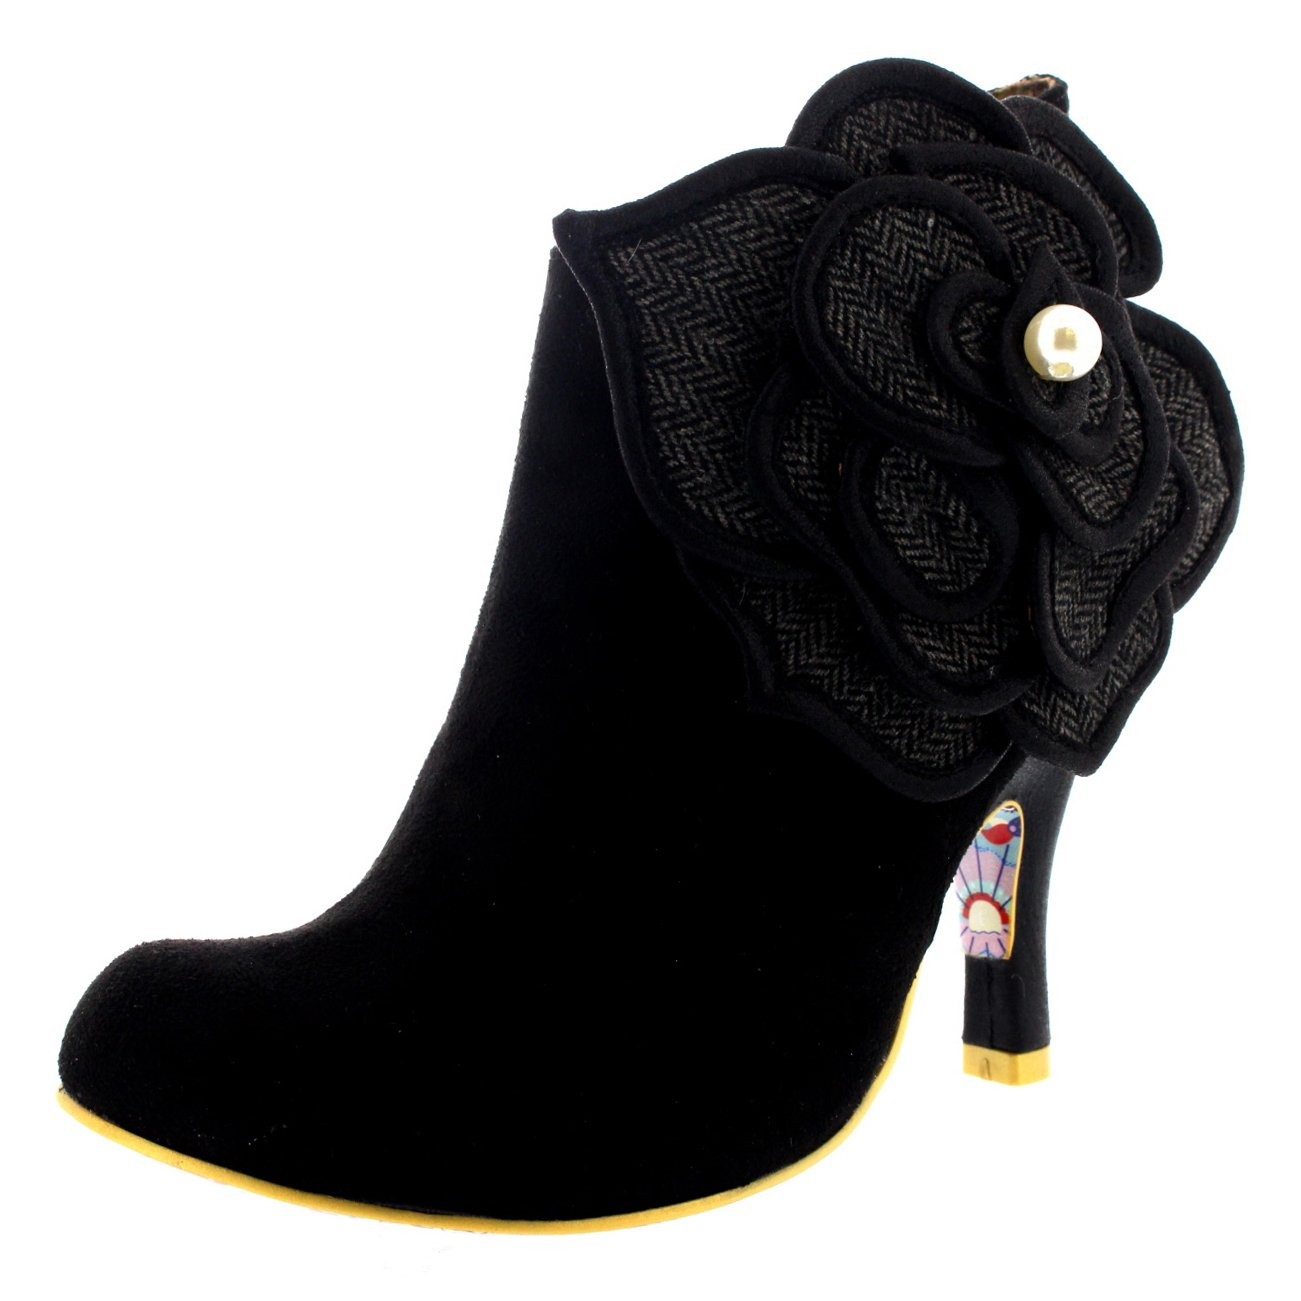 Womens Irregular Choice Pearl Necture Zip High Heel Evening Ankle Boot - Black - 6.5